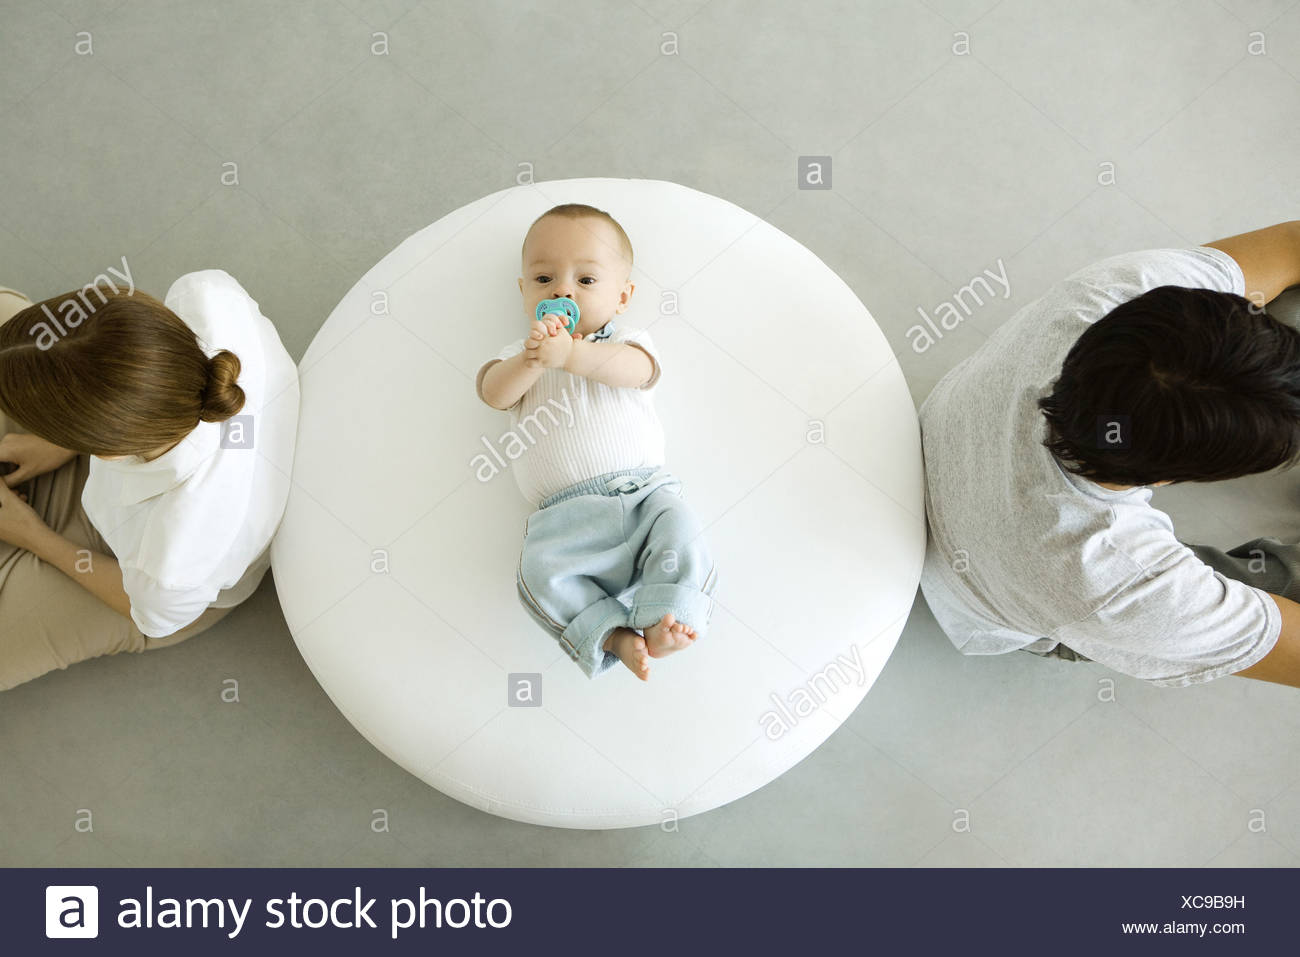 Infant lying on ottoman, mother and father sitting with backs turned, overhead view - Stock Image